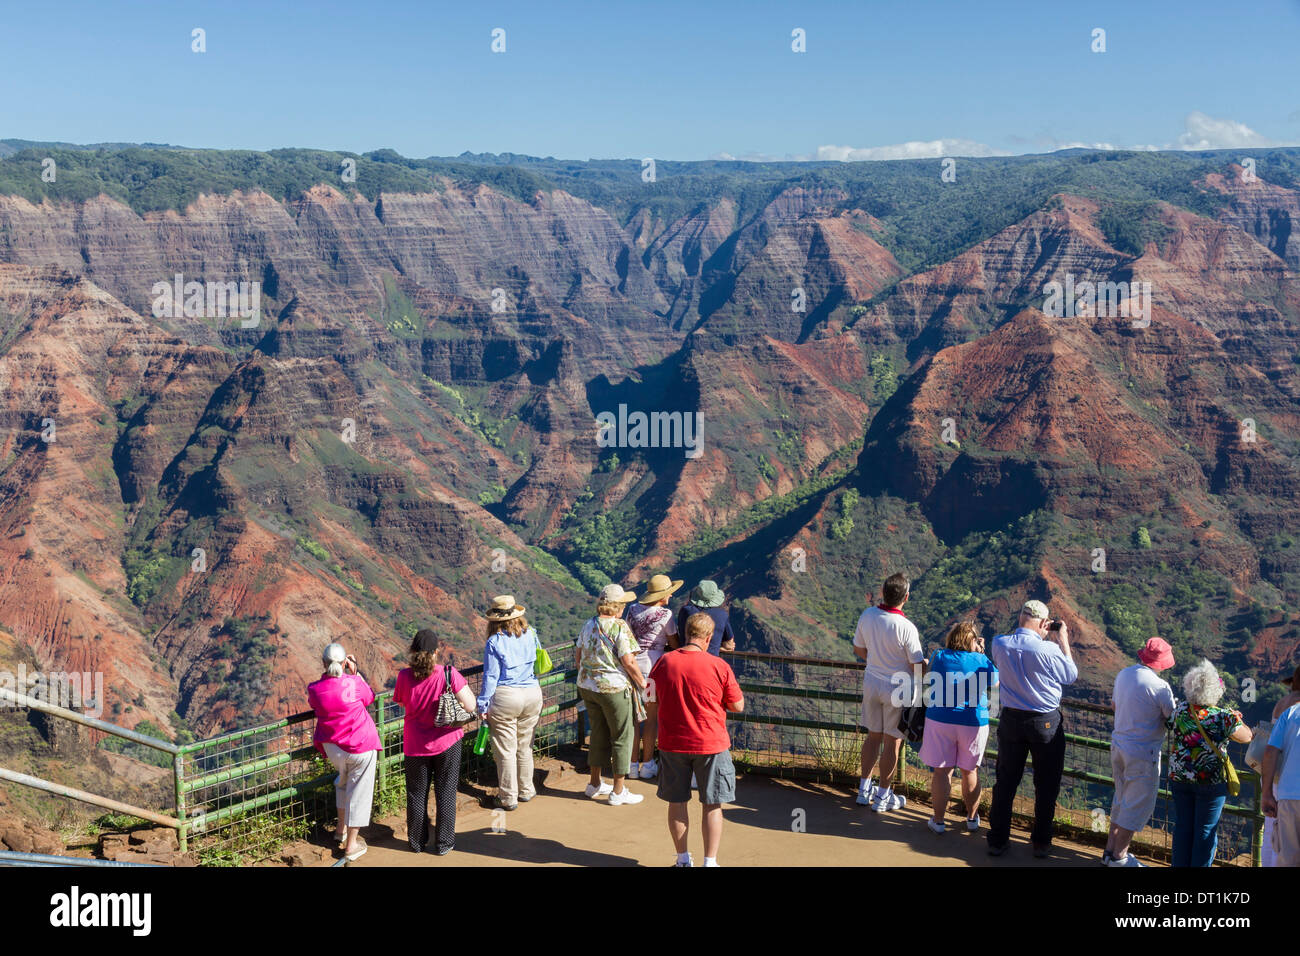 Waimea Canyon, Kauai, Hawaii, United States of America, Pacific - Stock Image